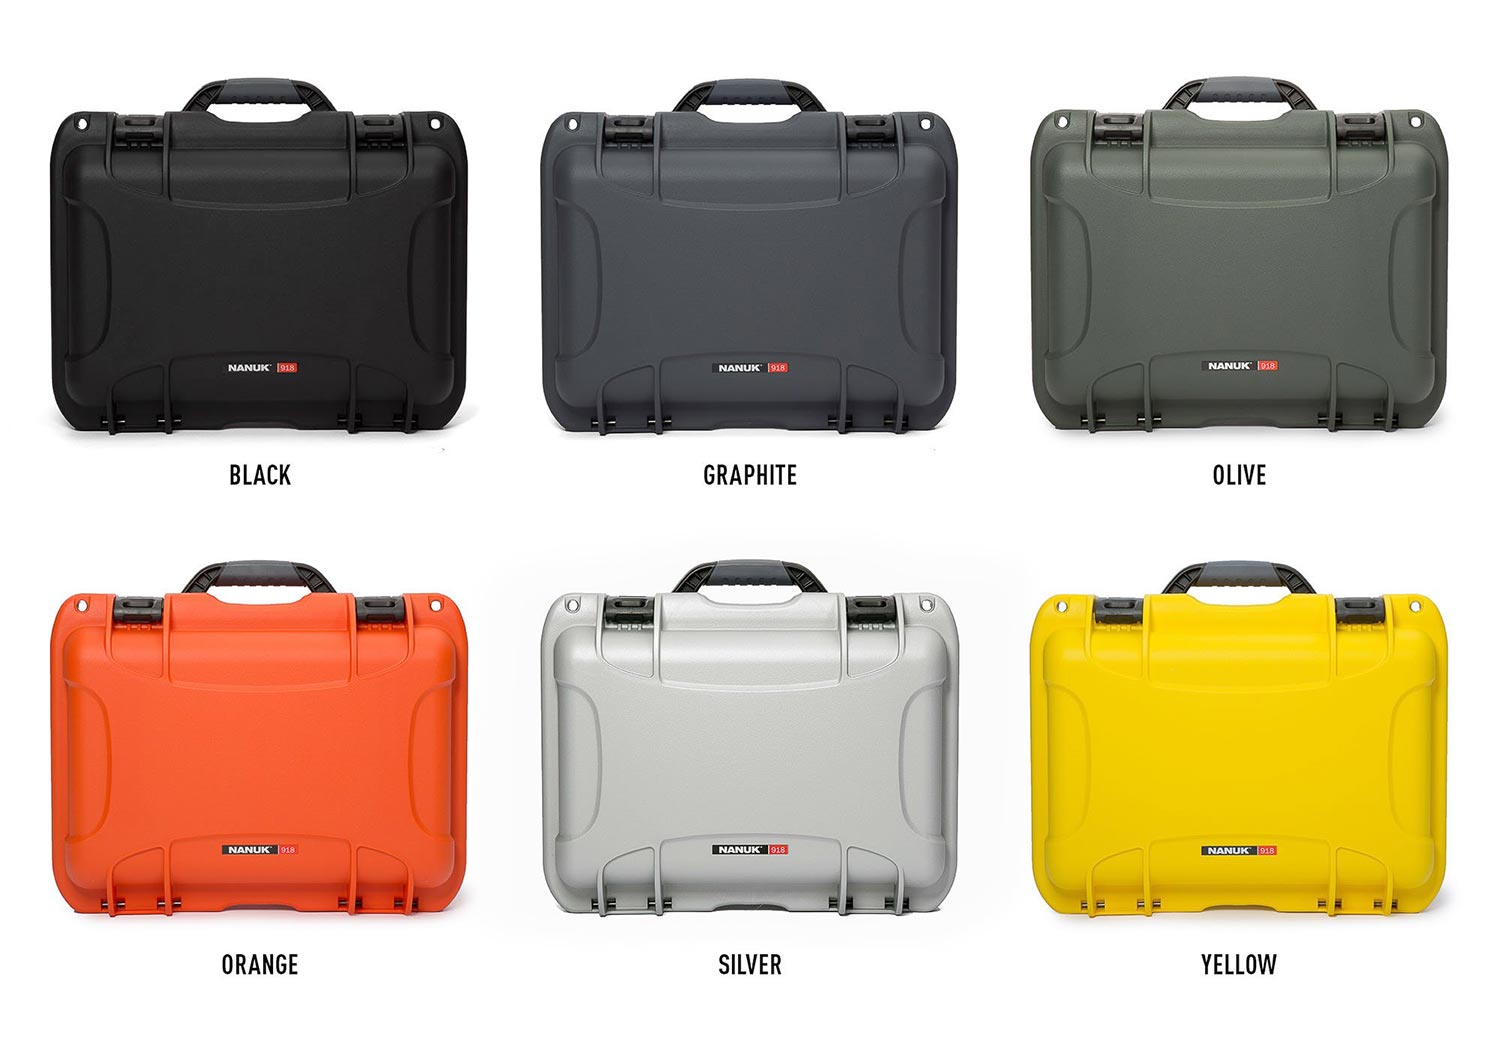 Nanuk 918 Hard Case Available in 6 Colors